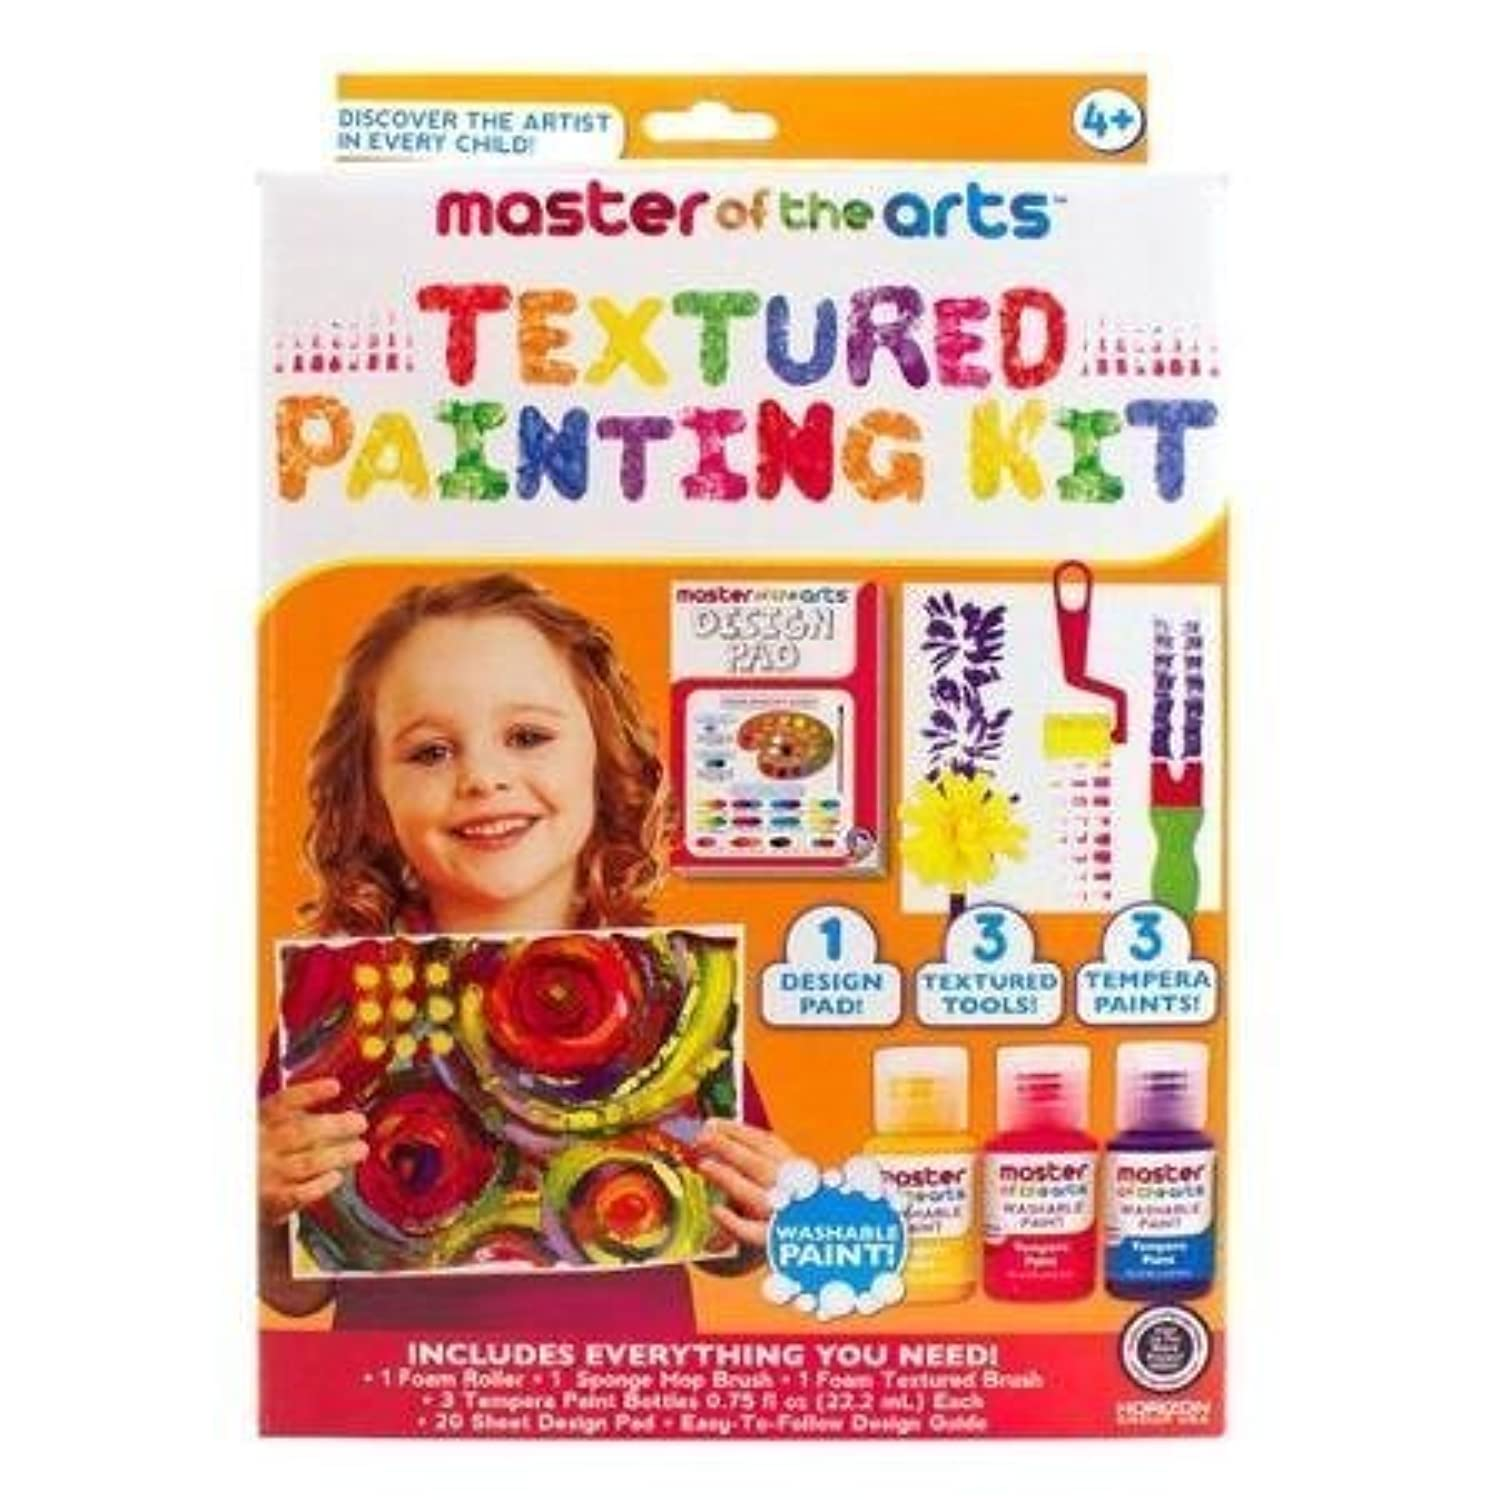 Master of the Arts Textured Painting Kit